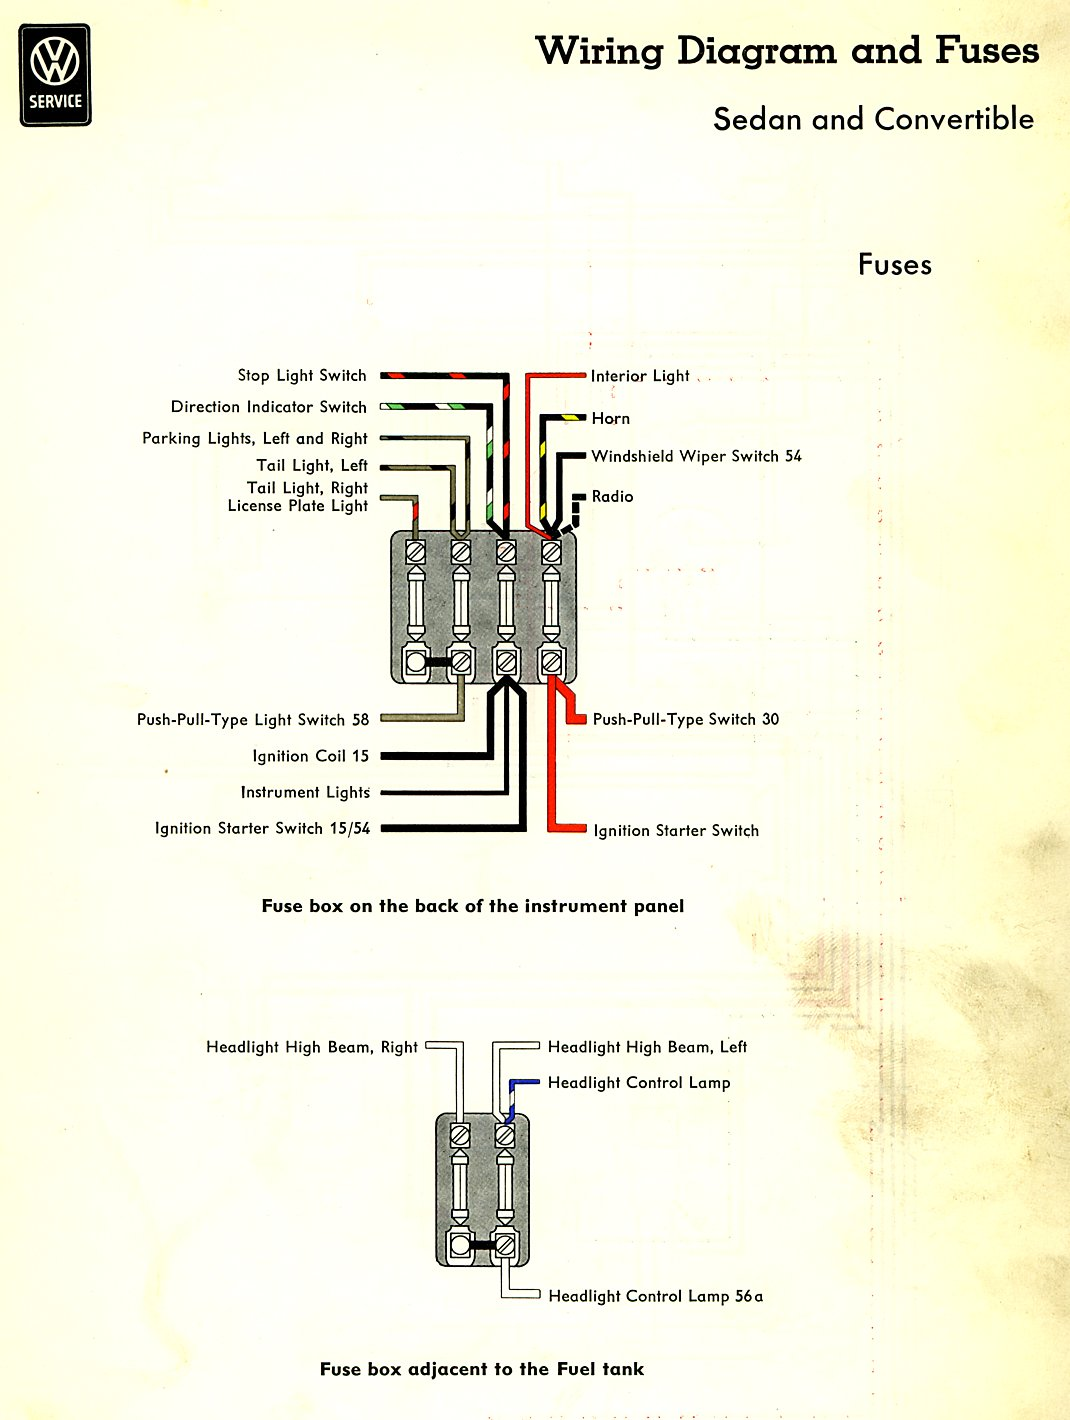 thesamba com type 1 wiring diagrams1966 Beetle Wiring Diagram #7